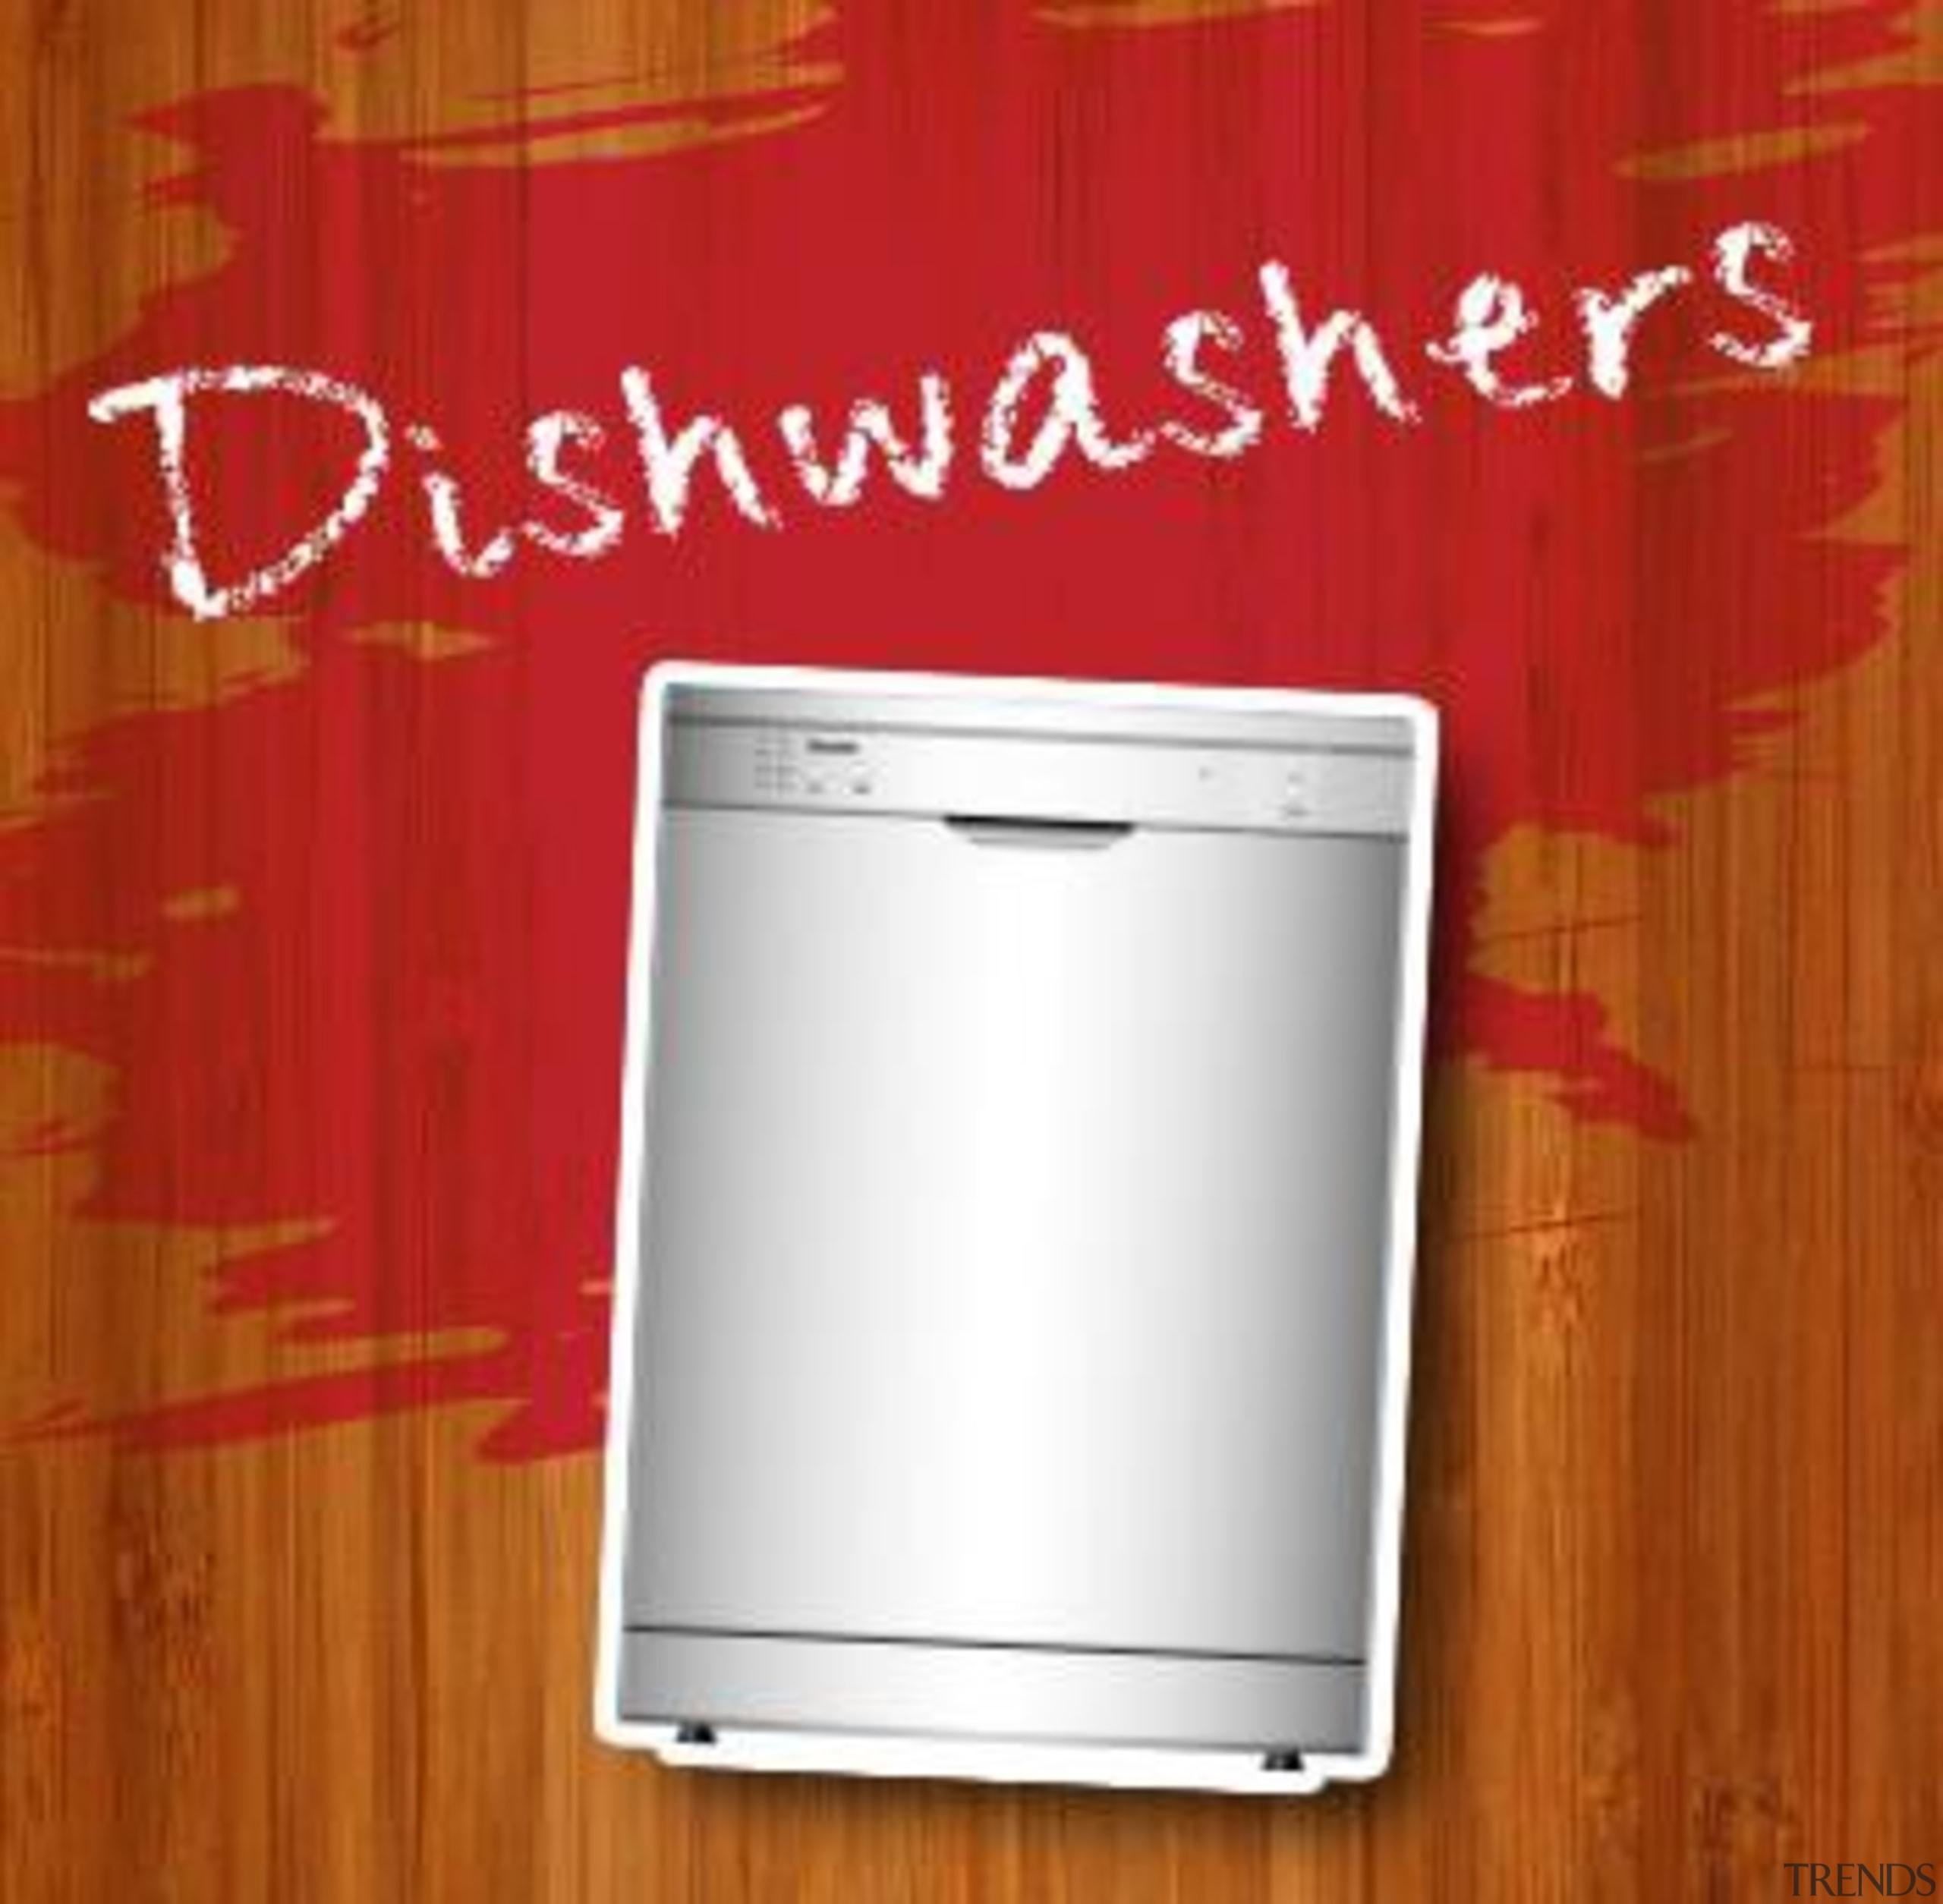 Baumatic brochure on our dishwashersFor more information, please home appliance, major appliance, product, product design, red, brown